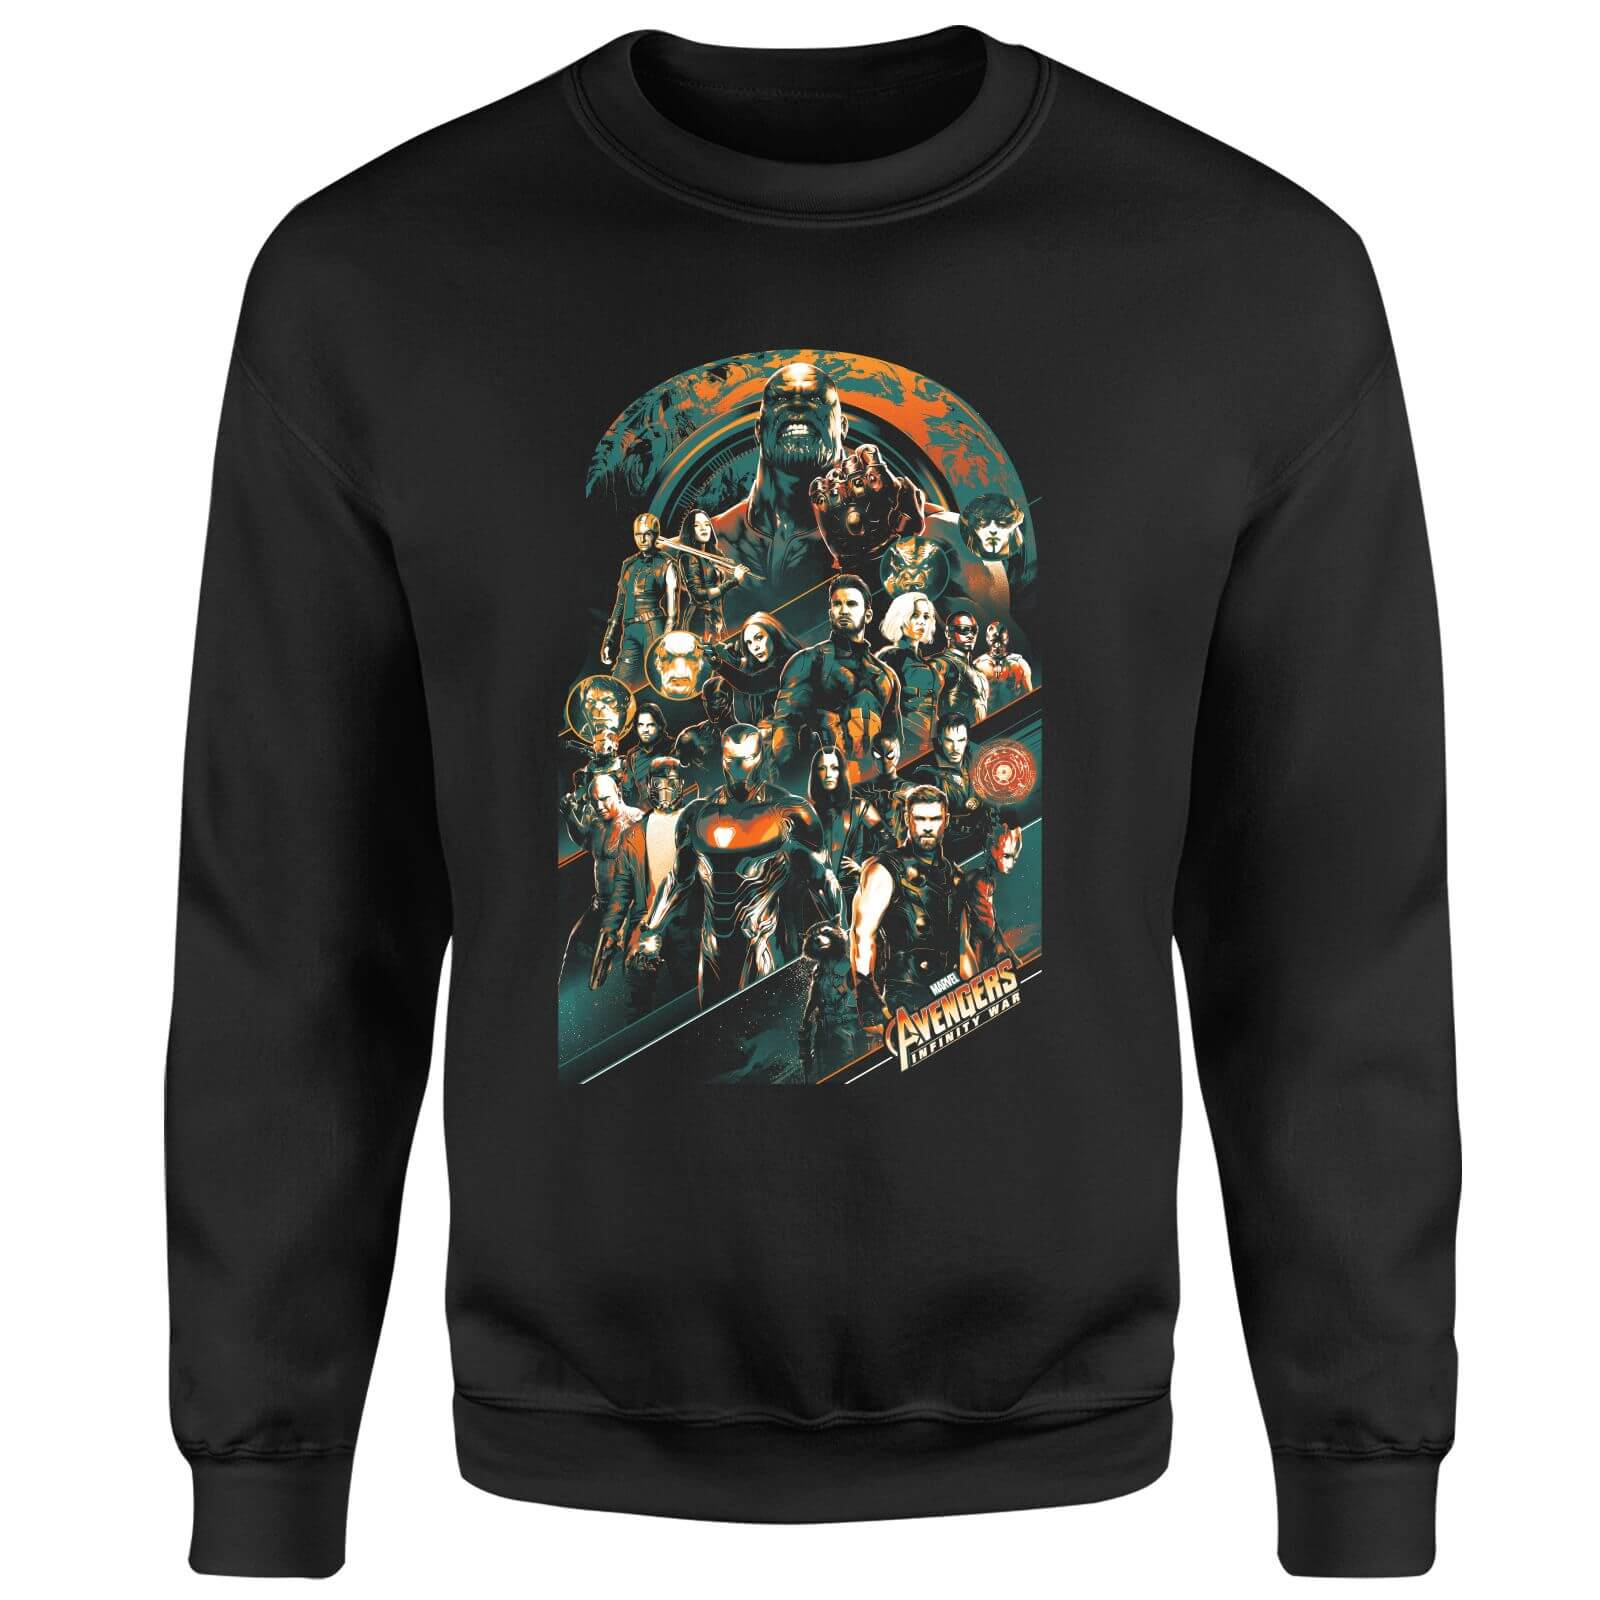 Marvel Avengers Infinity War Avengers Team Sweatshirt - Black